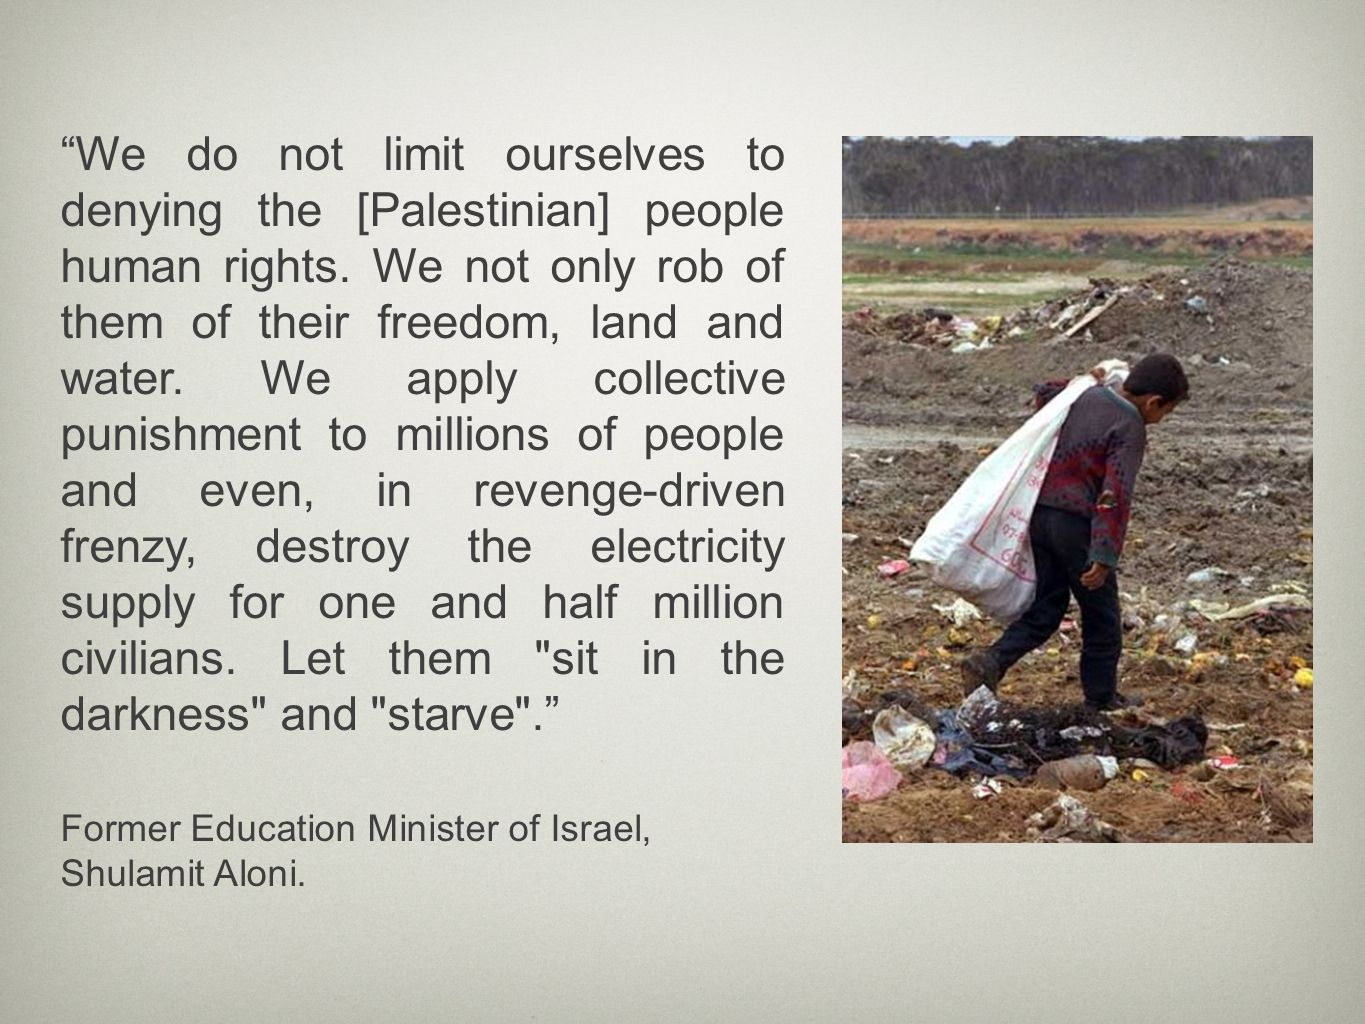 We do not limit ourselves to denying the [Palestinian] people human rights.